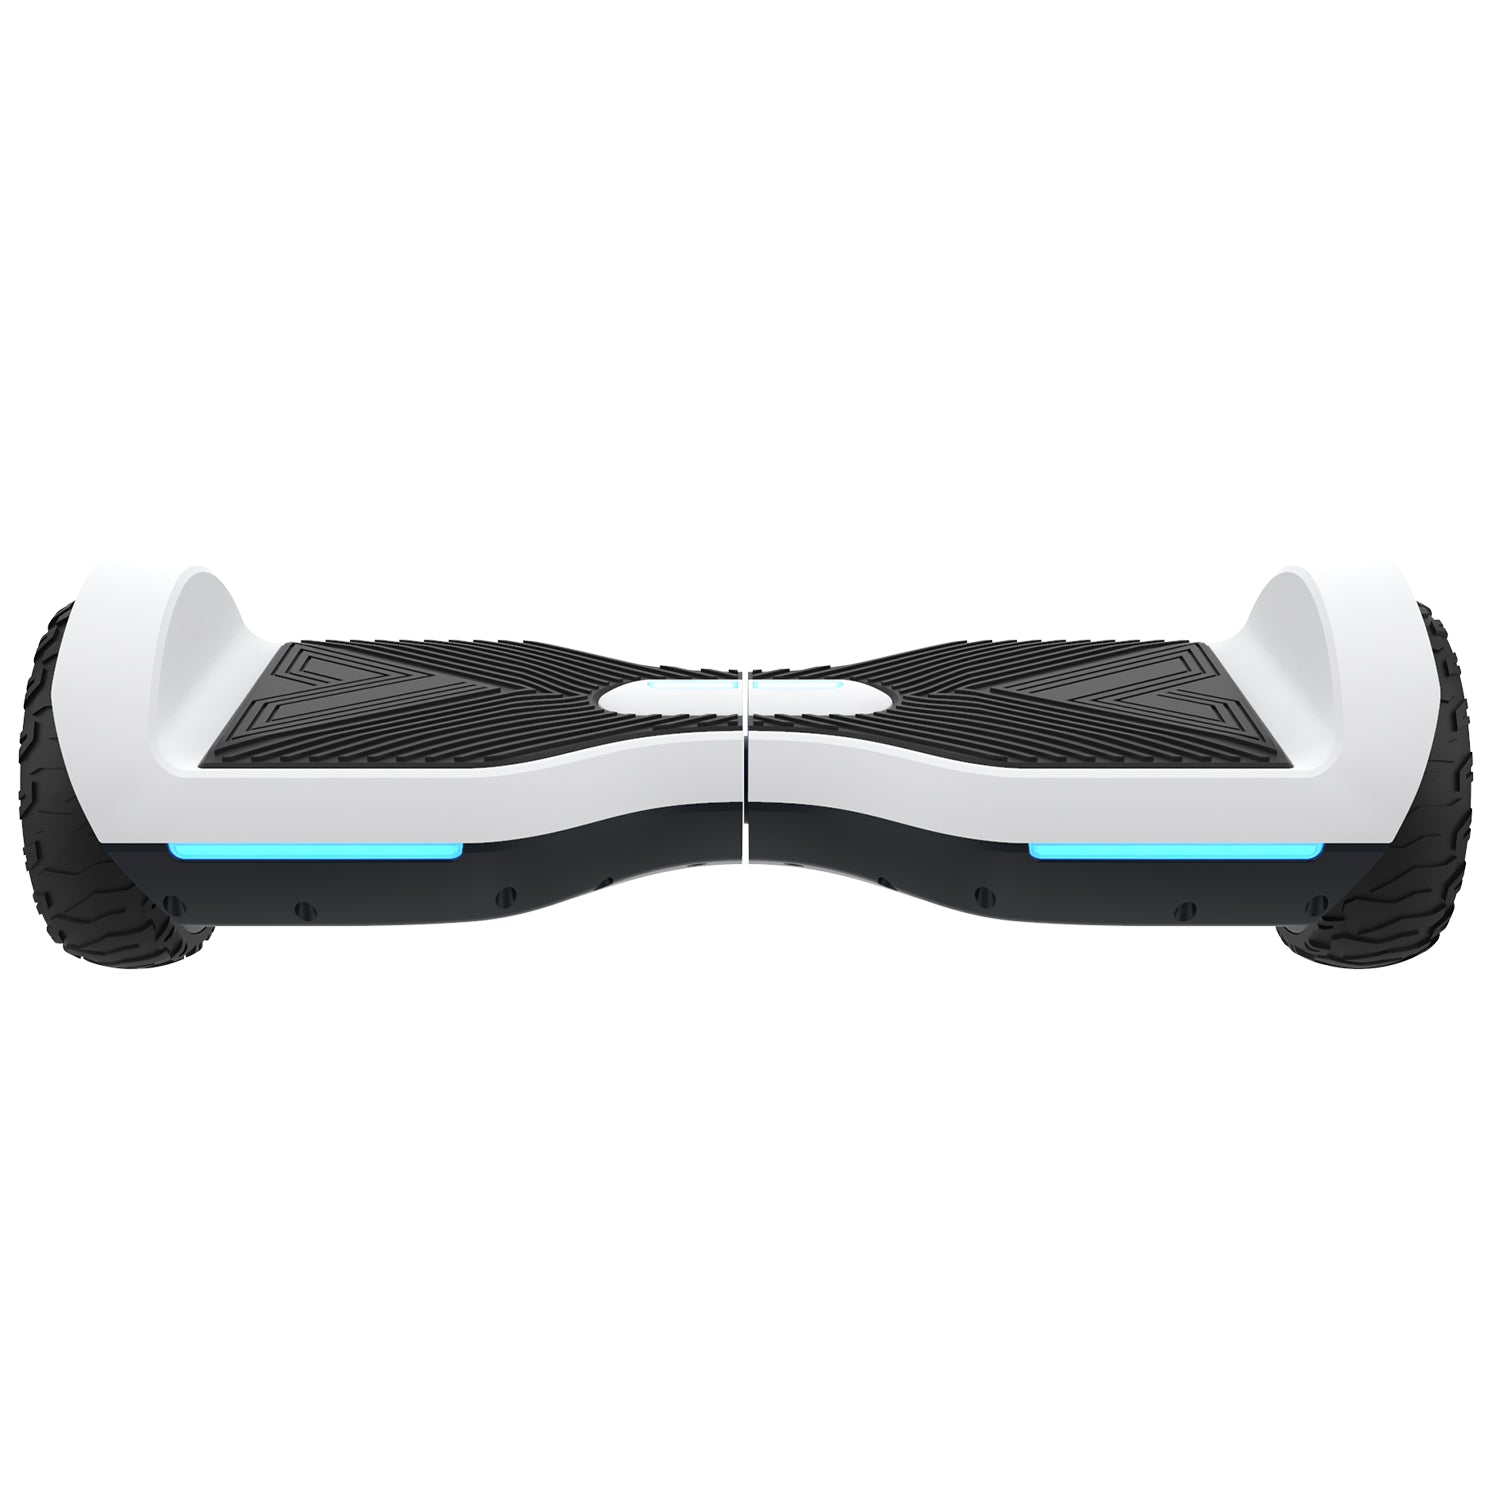 white srx a6 bluetooth hoverboard front image